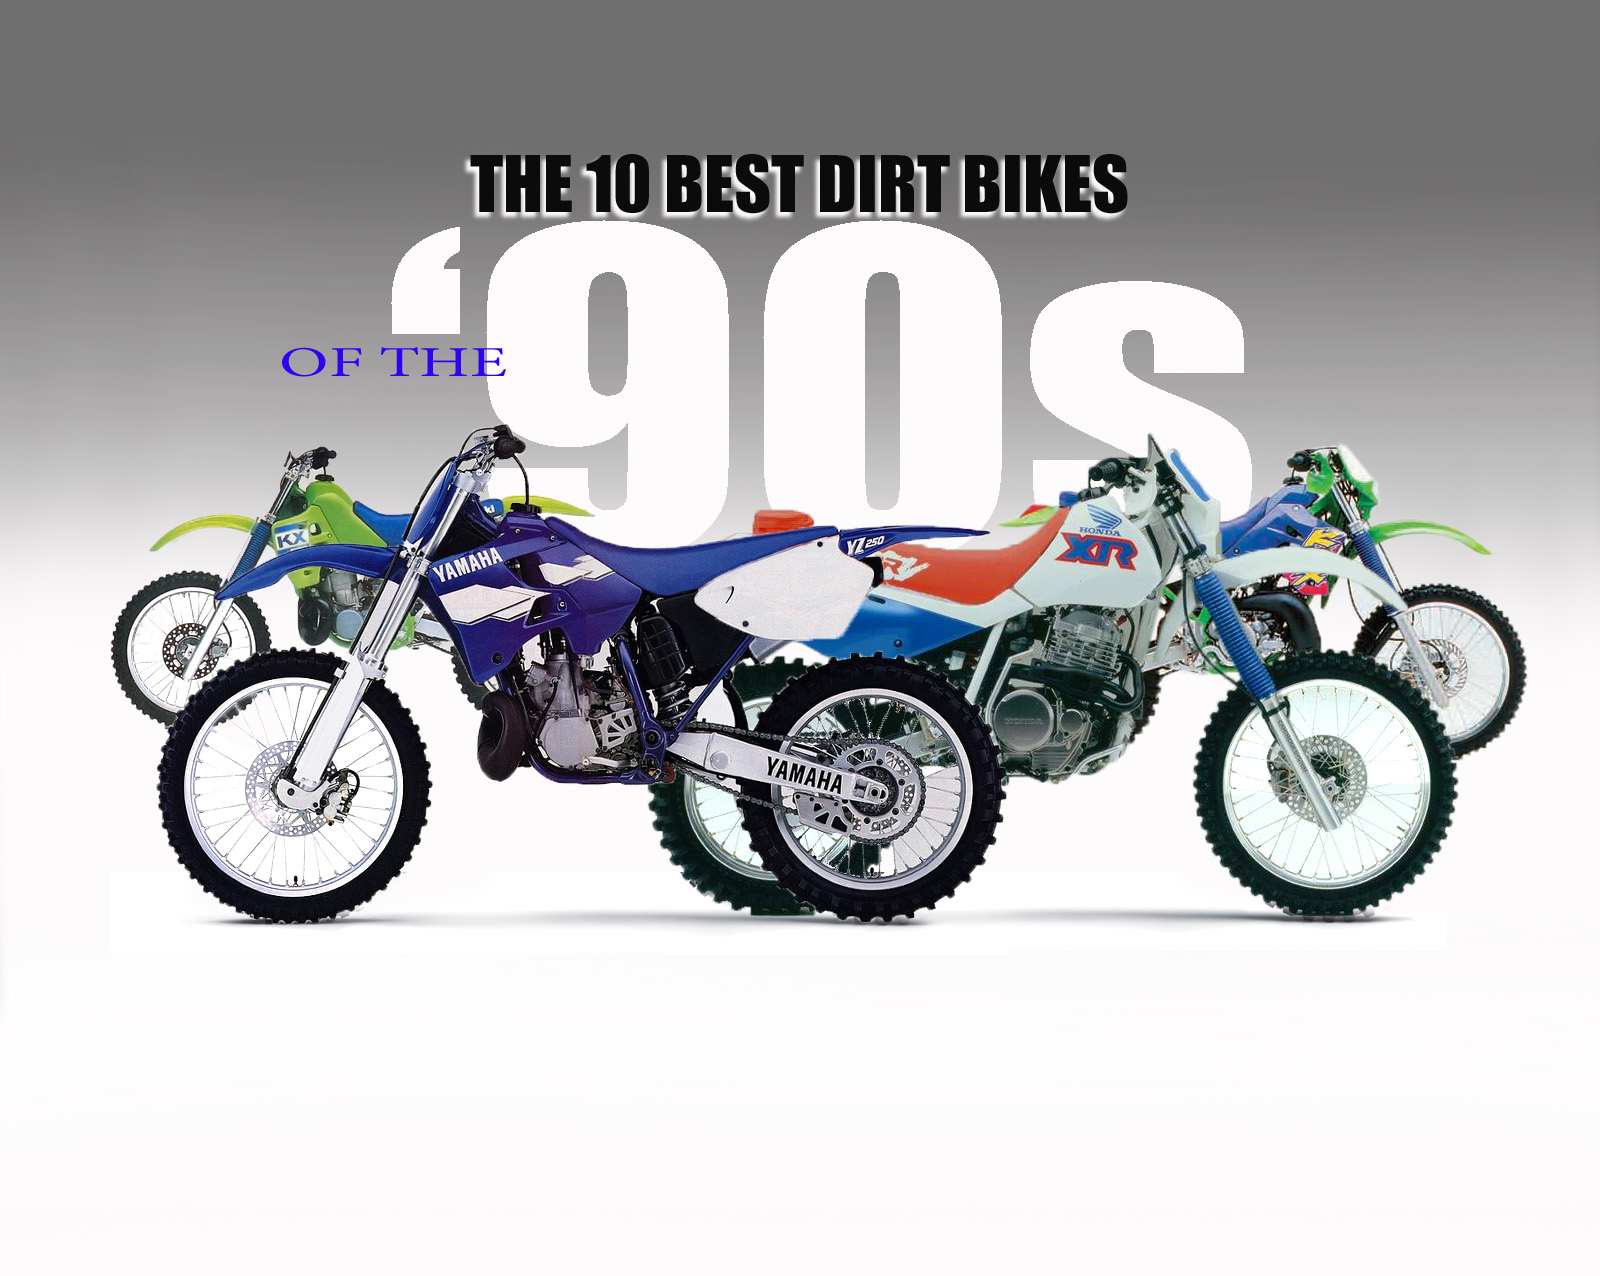 10 BEST DIRT BIKES OF THE '90s | Dirt Bike Magazine